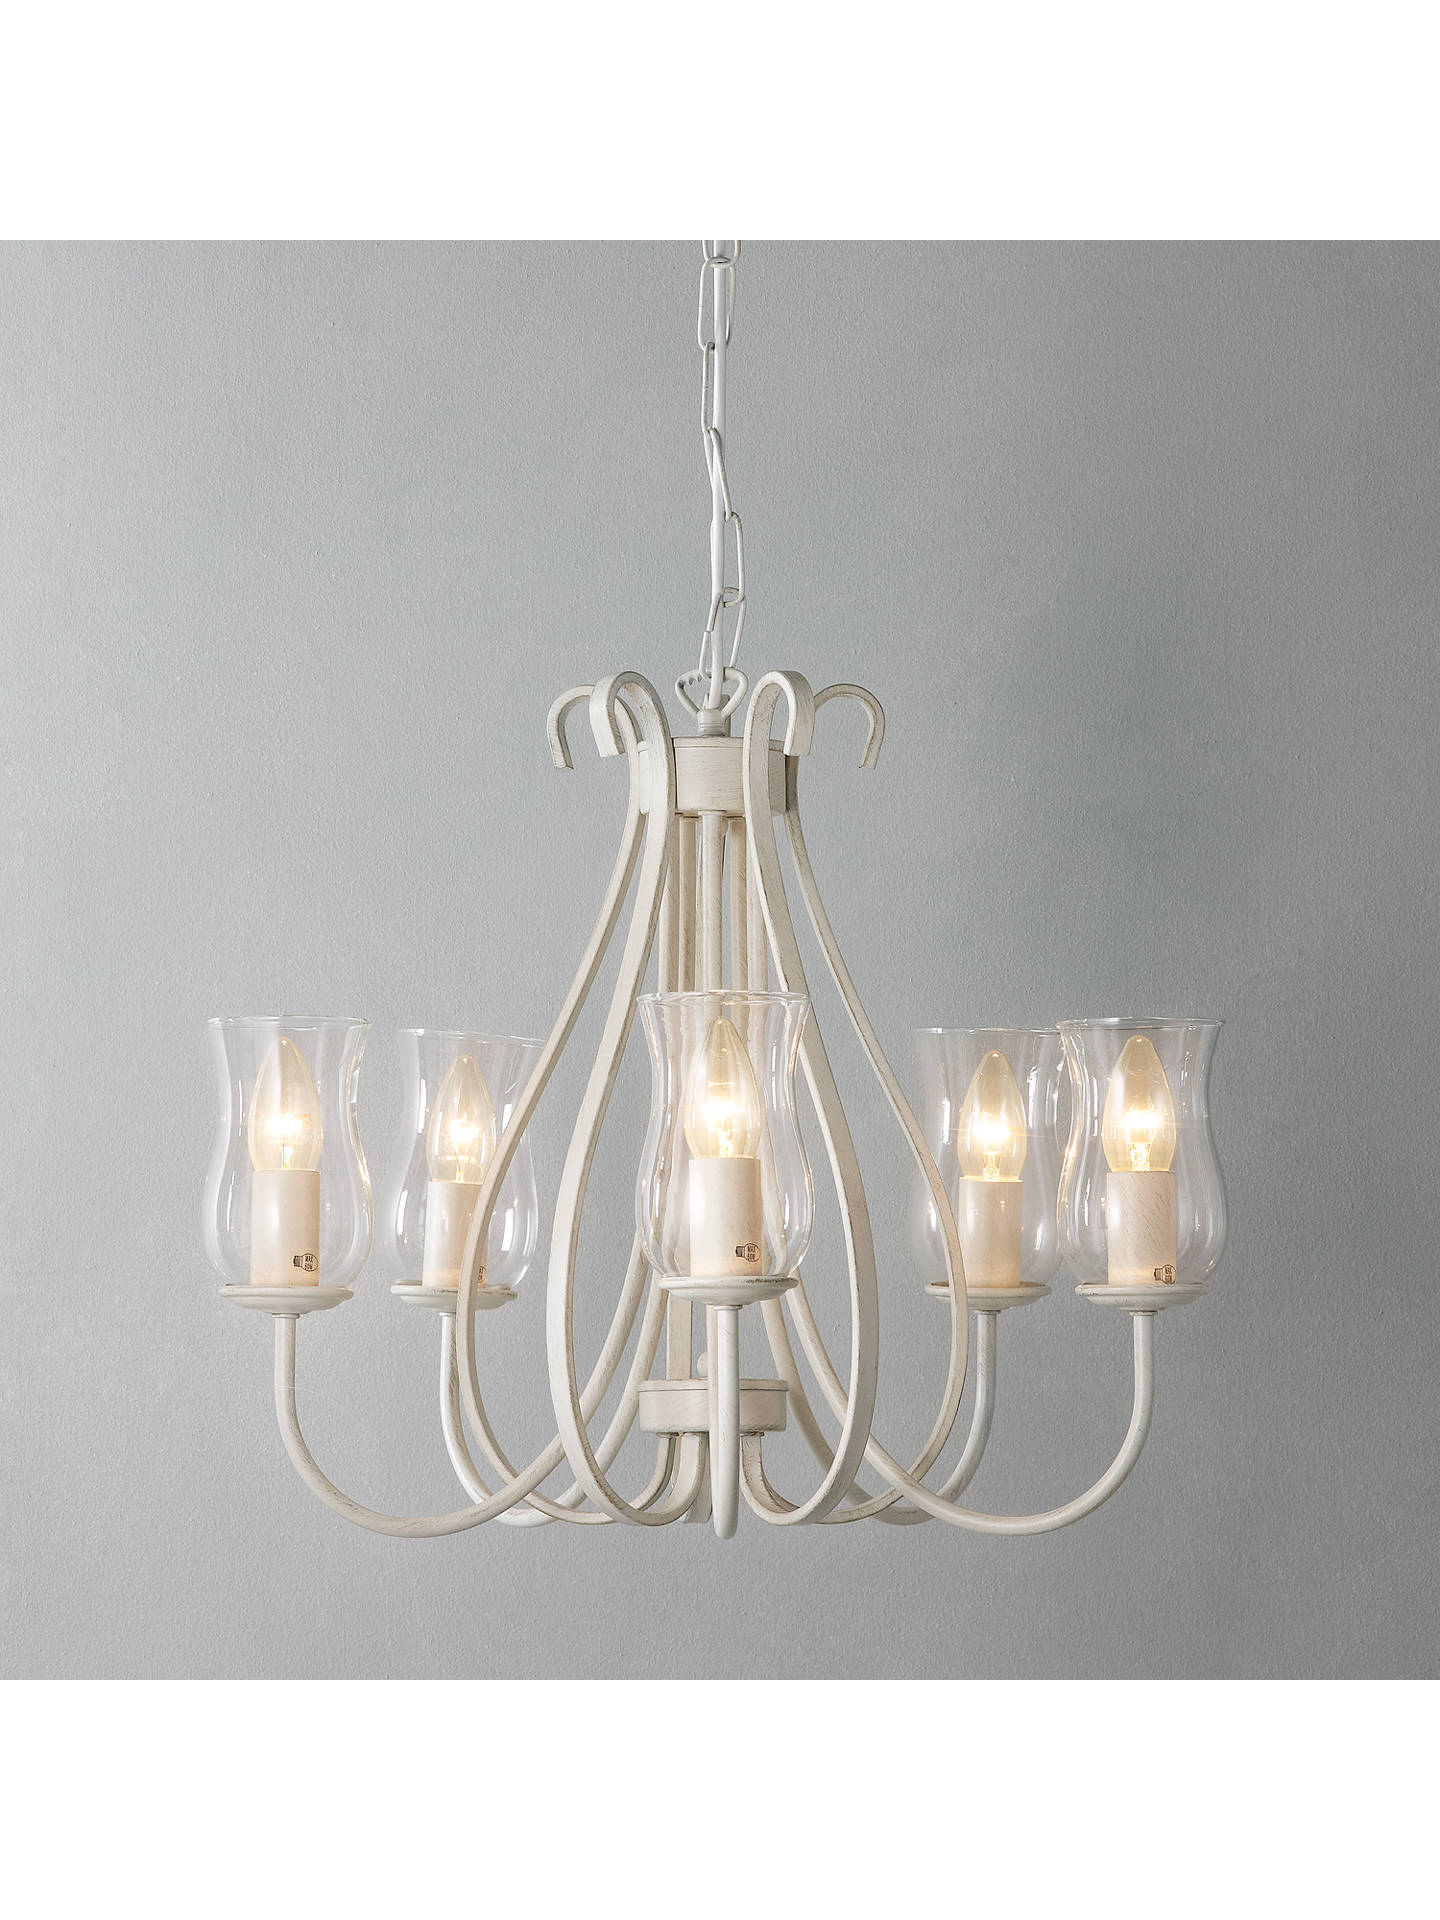 John lewis esma chandelier 5 arm at john lewis partners buyjohn lewis esma chandelier 5 arm online at johnlewis aloadofball Image collections